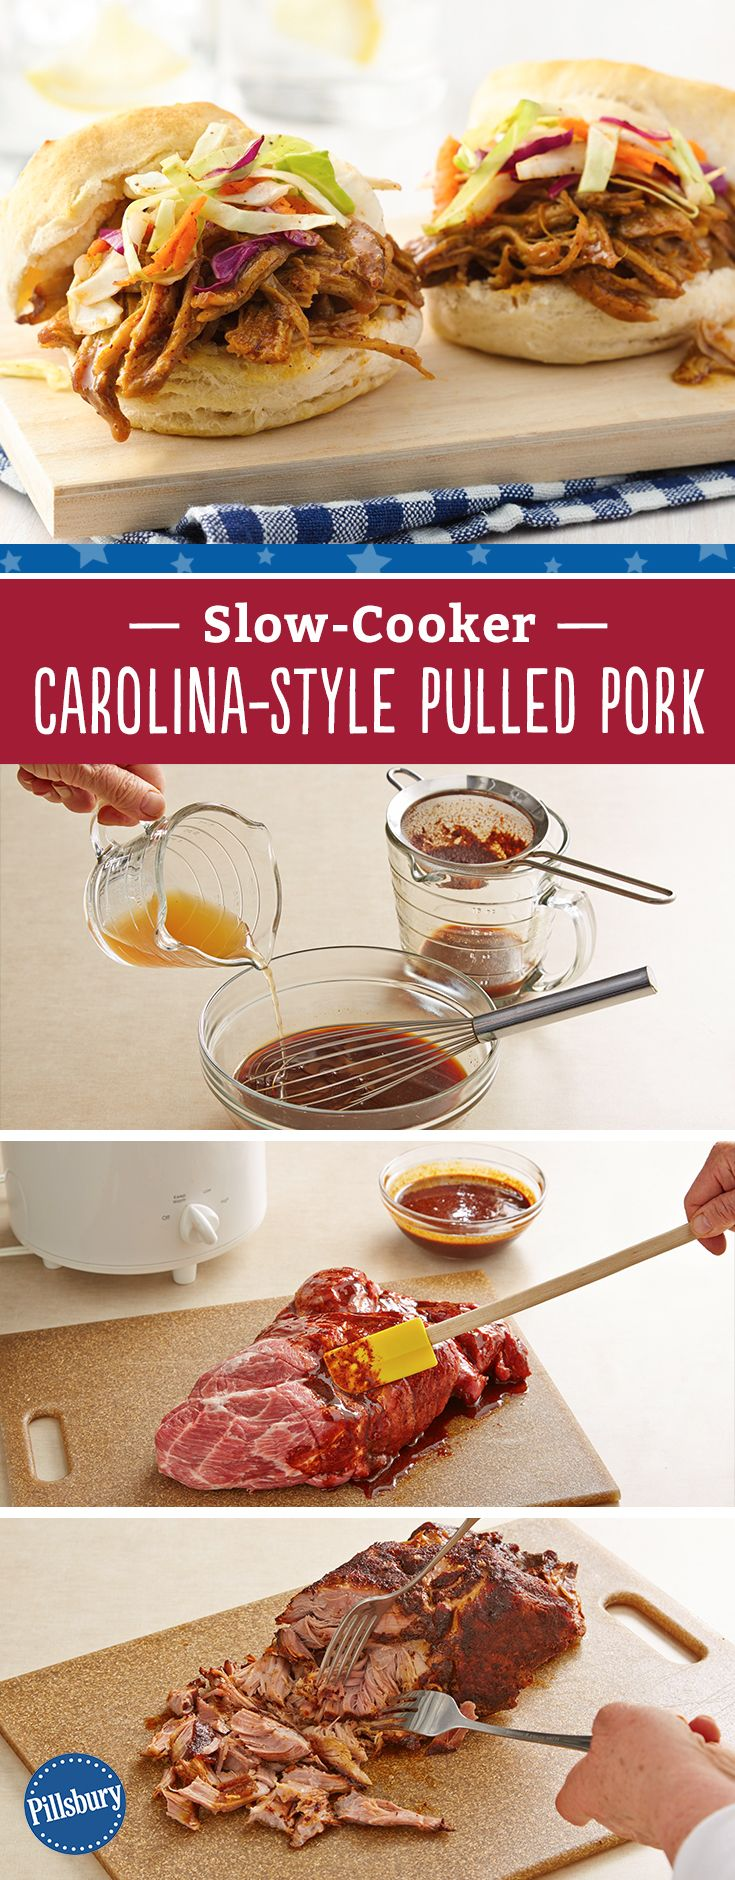 Try this juicy Slow-Cooker Carolina Pulled Pork and top it off with our flaky Pillsbury biscuits. Don't be surprised if you have everyone asking you for the recipe!